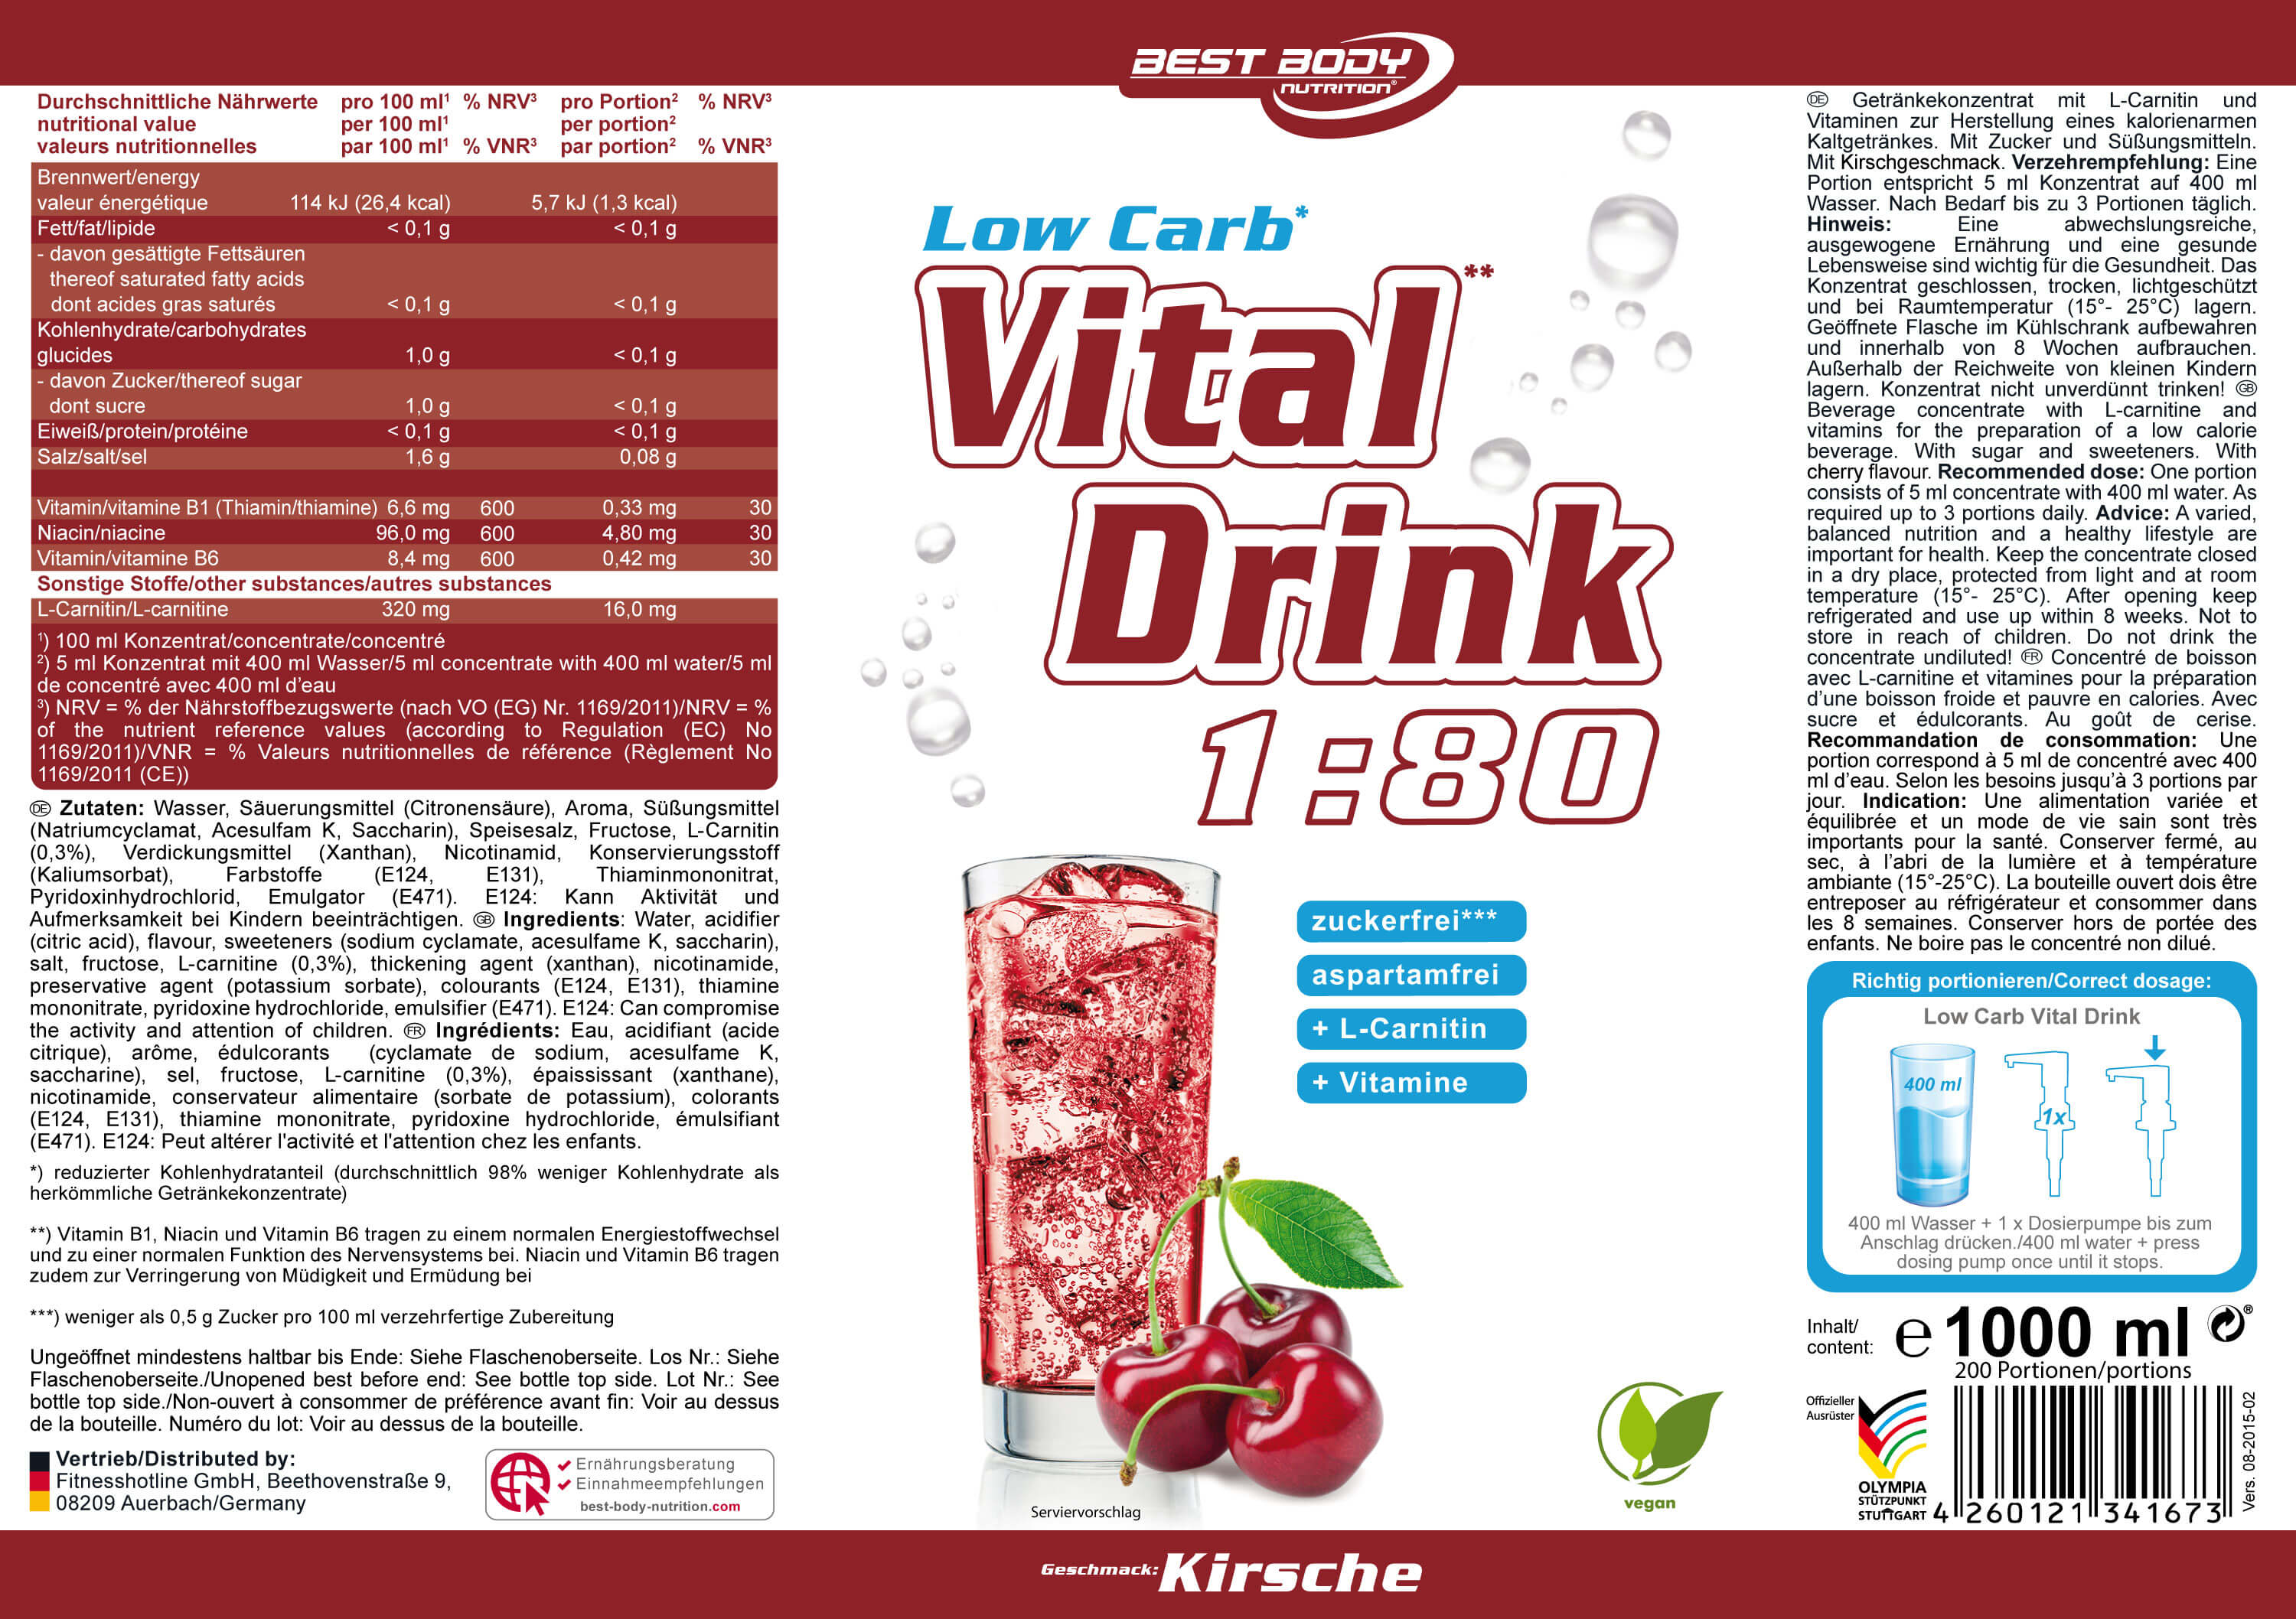 Best Body Nutrition® Low Carb Vital Drink Nährwerte